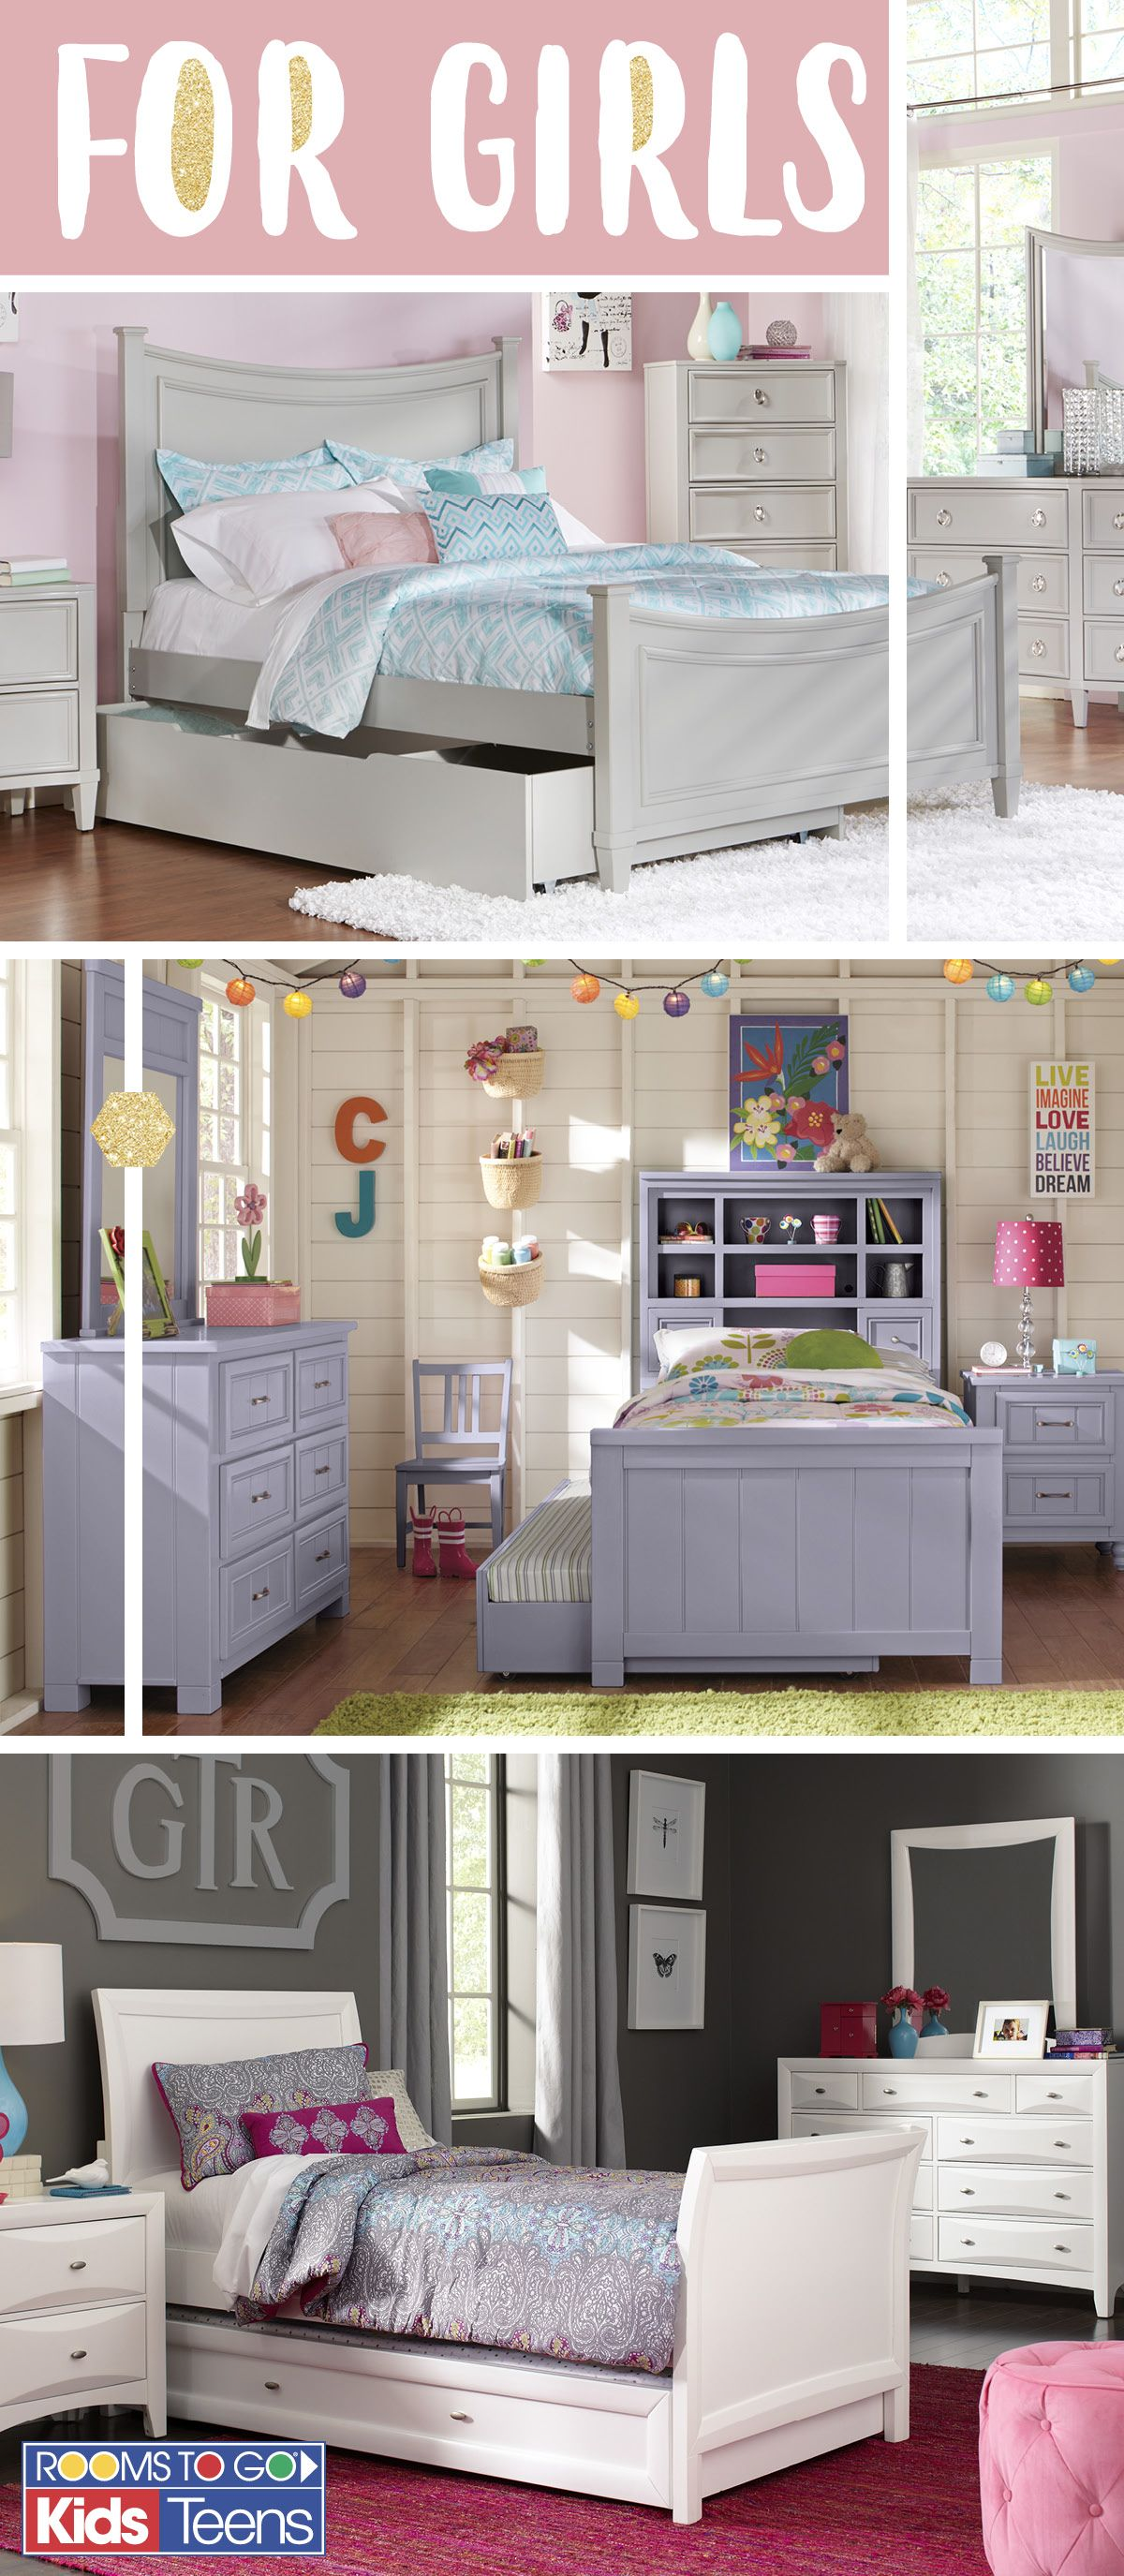 With Decorator Inspired Room Sets That Come In A Range Of Colors Styles And Sizes Rooms To Go Kids M Kids Bedroom Sets Rooms To Go Bedroom Girls Bedroom Sets